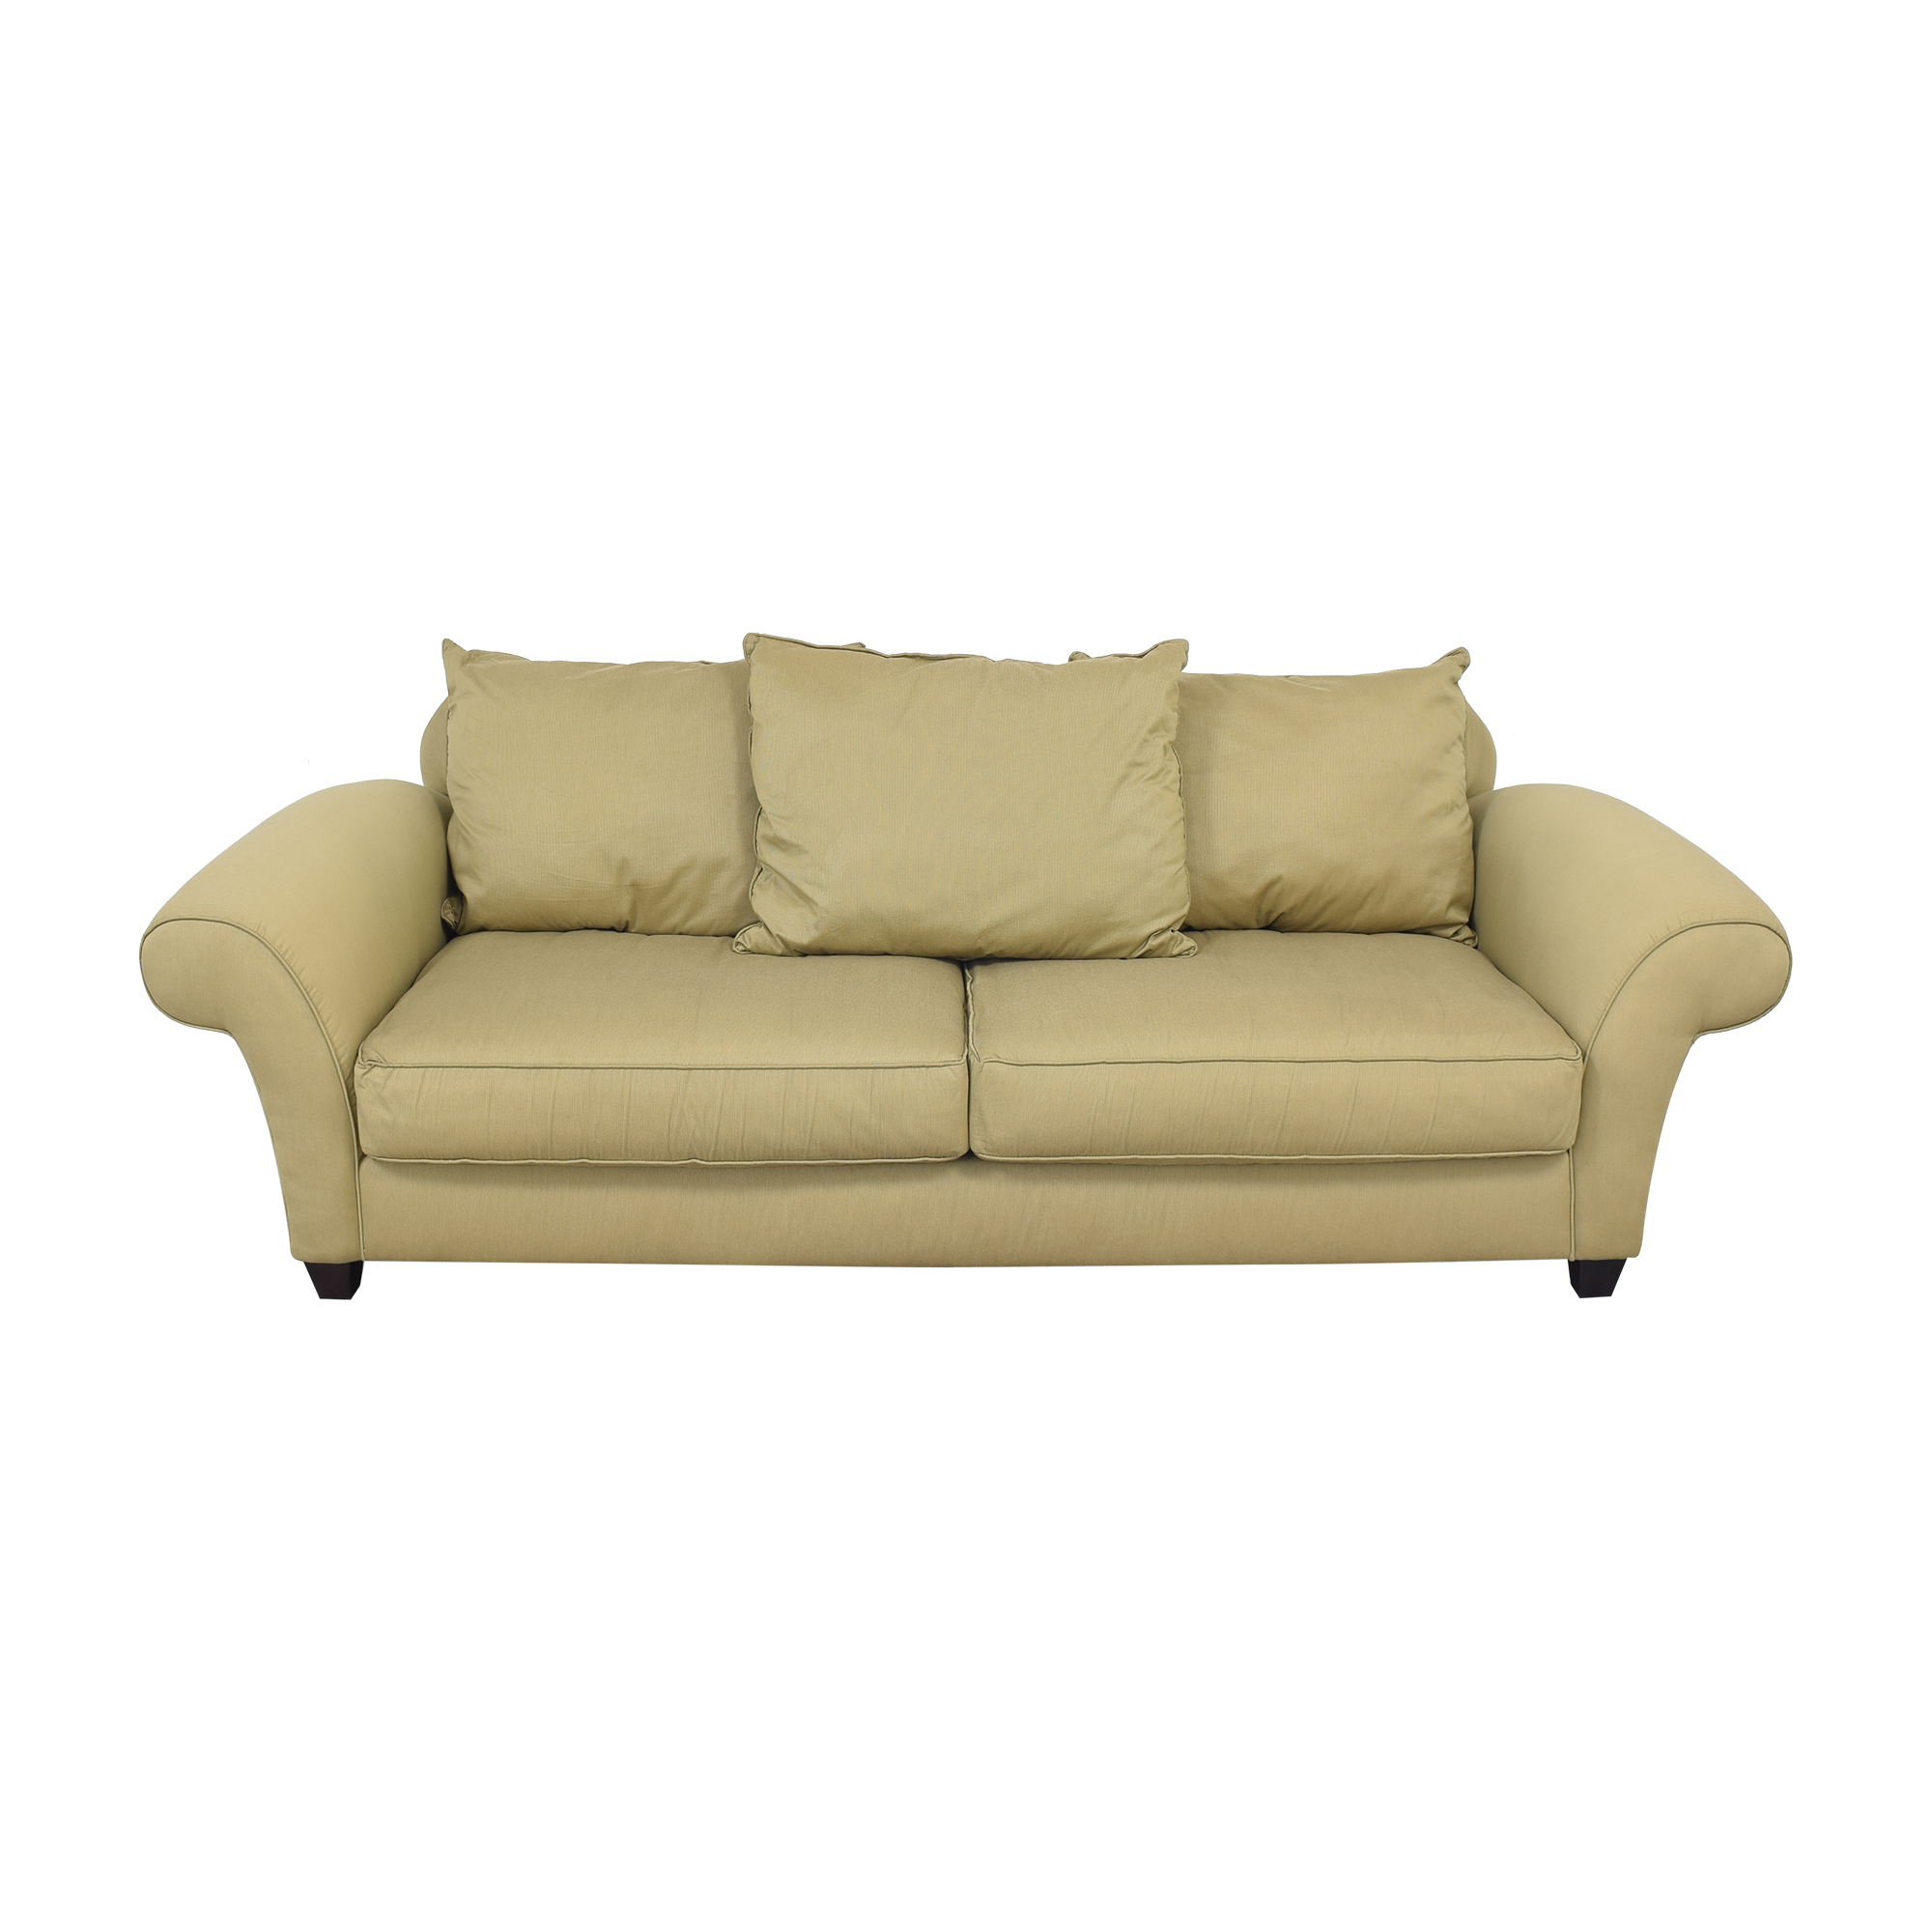 Storehouse Storehouse Furniture Classic Roll Arm Sofa price